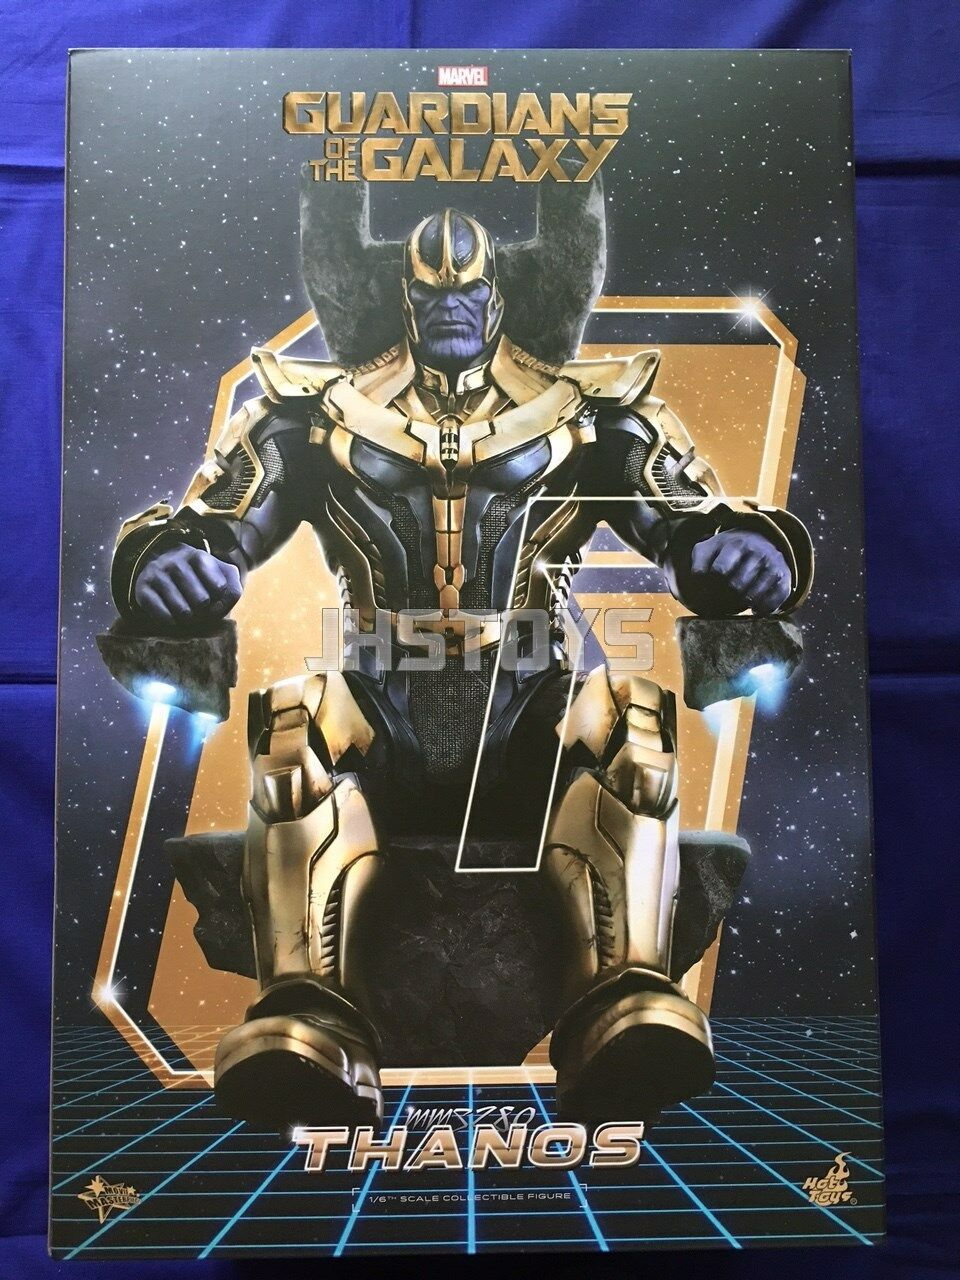 Nuovo Caliente giocattoli 1 6 Guardians of the Galaxy Thanos Thanos Thanos MMS280 1ab00a